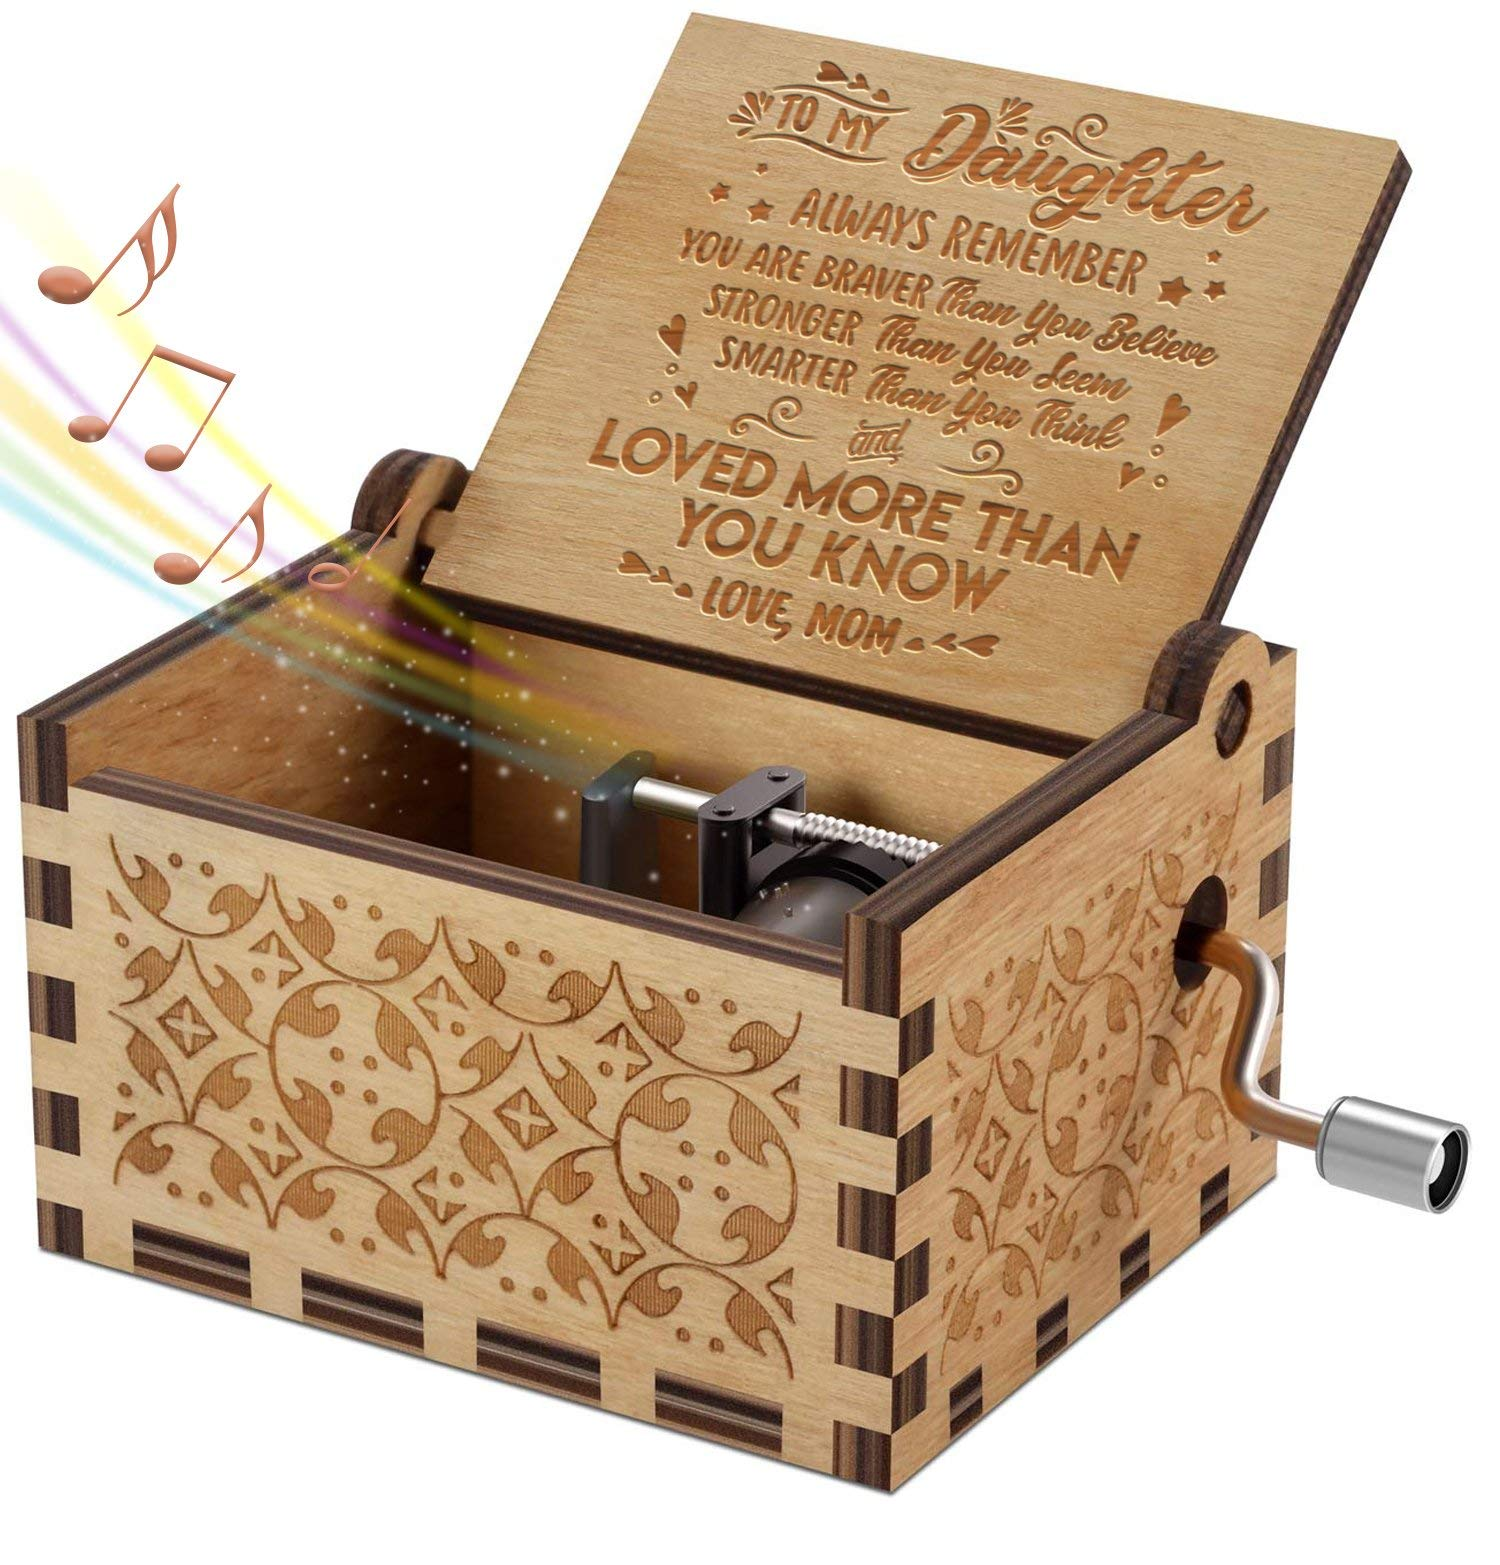 Engraved Music Box - You are My Sunshine, Gift for Daughter from Mom - You Are Stronger Than You Seem (B - From Mom) by DOPTIKA